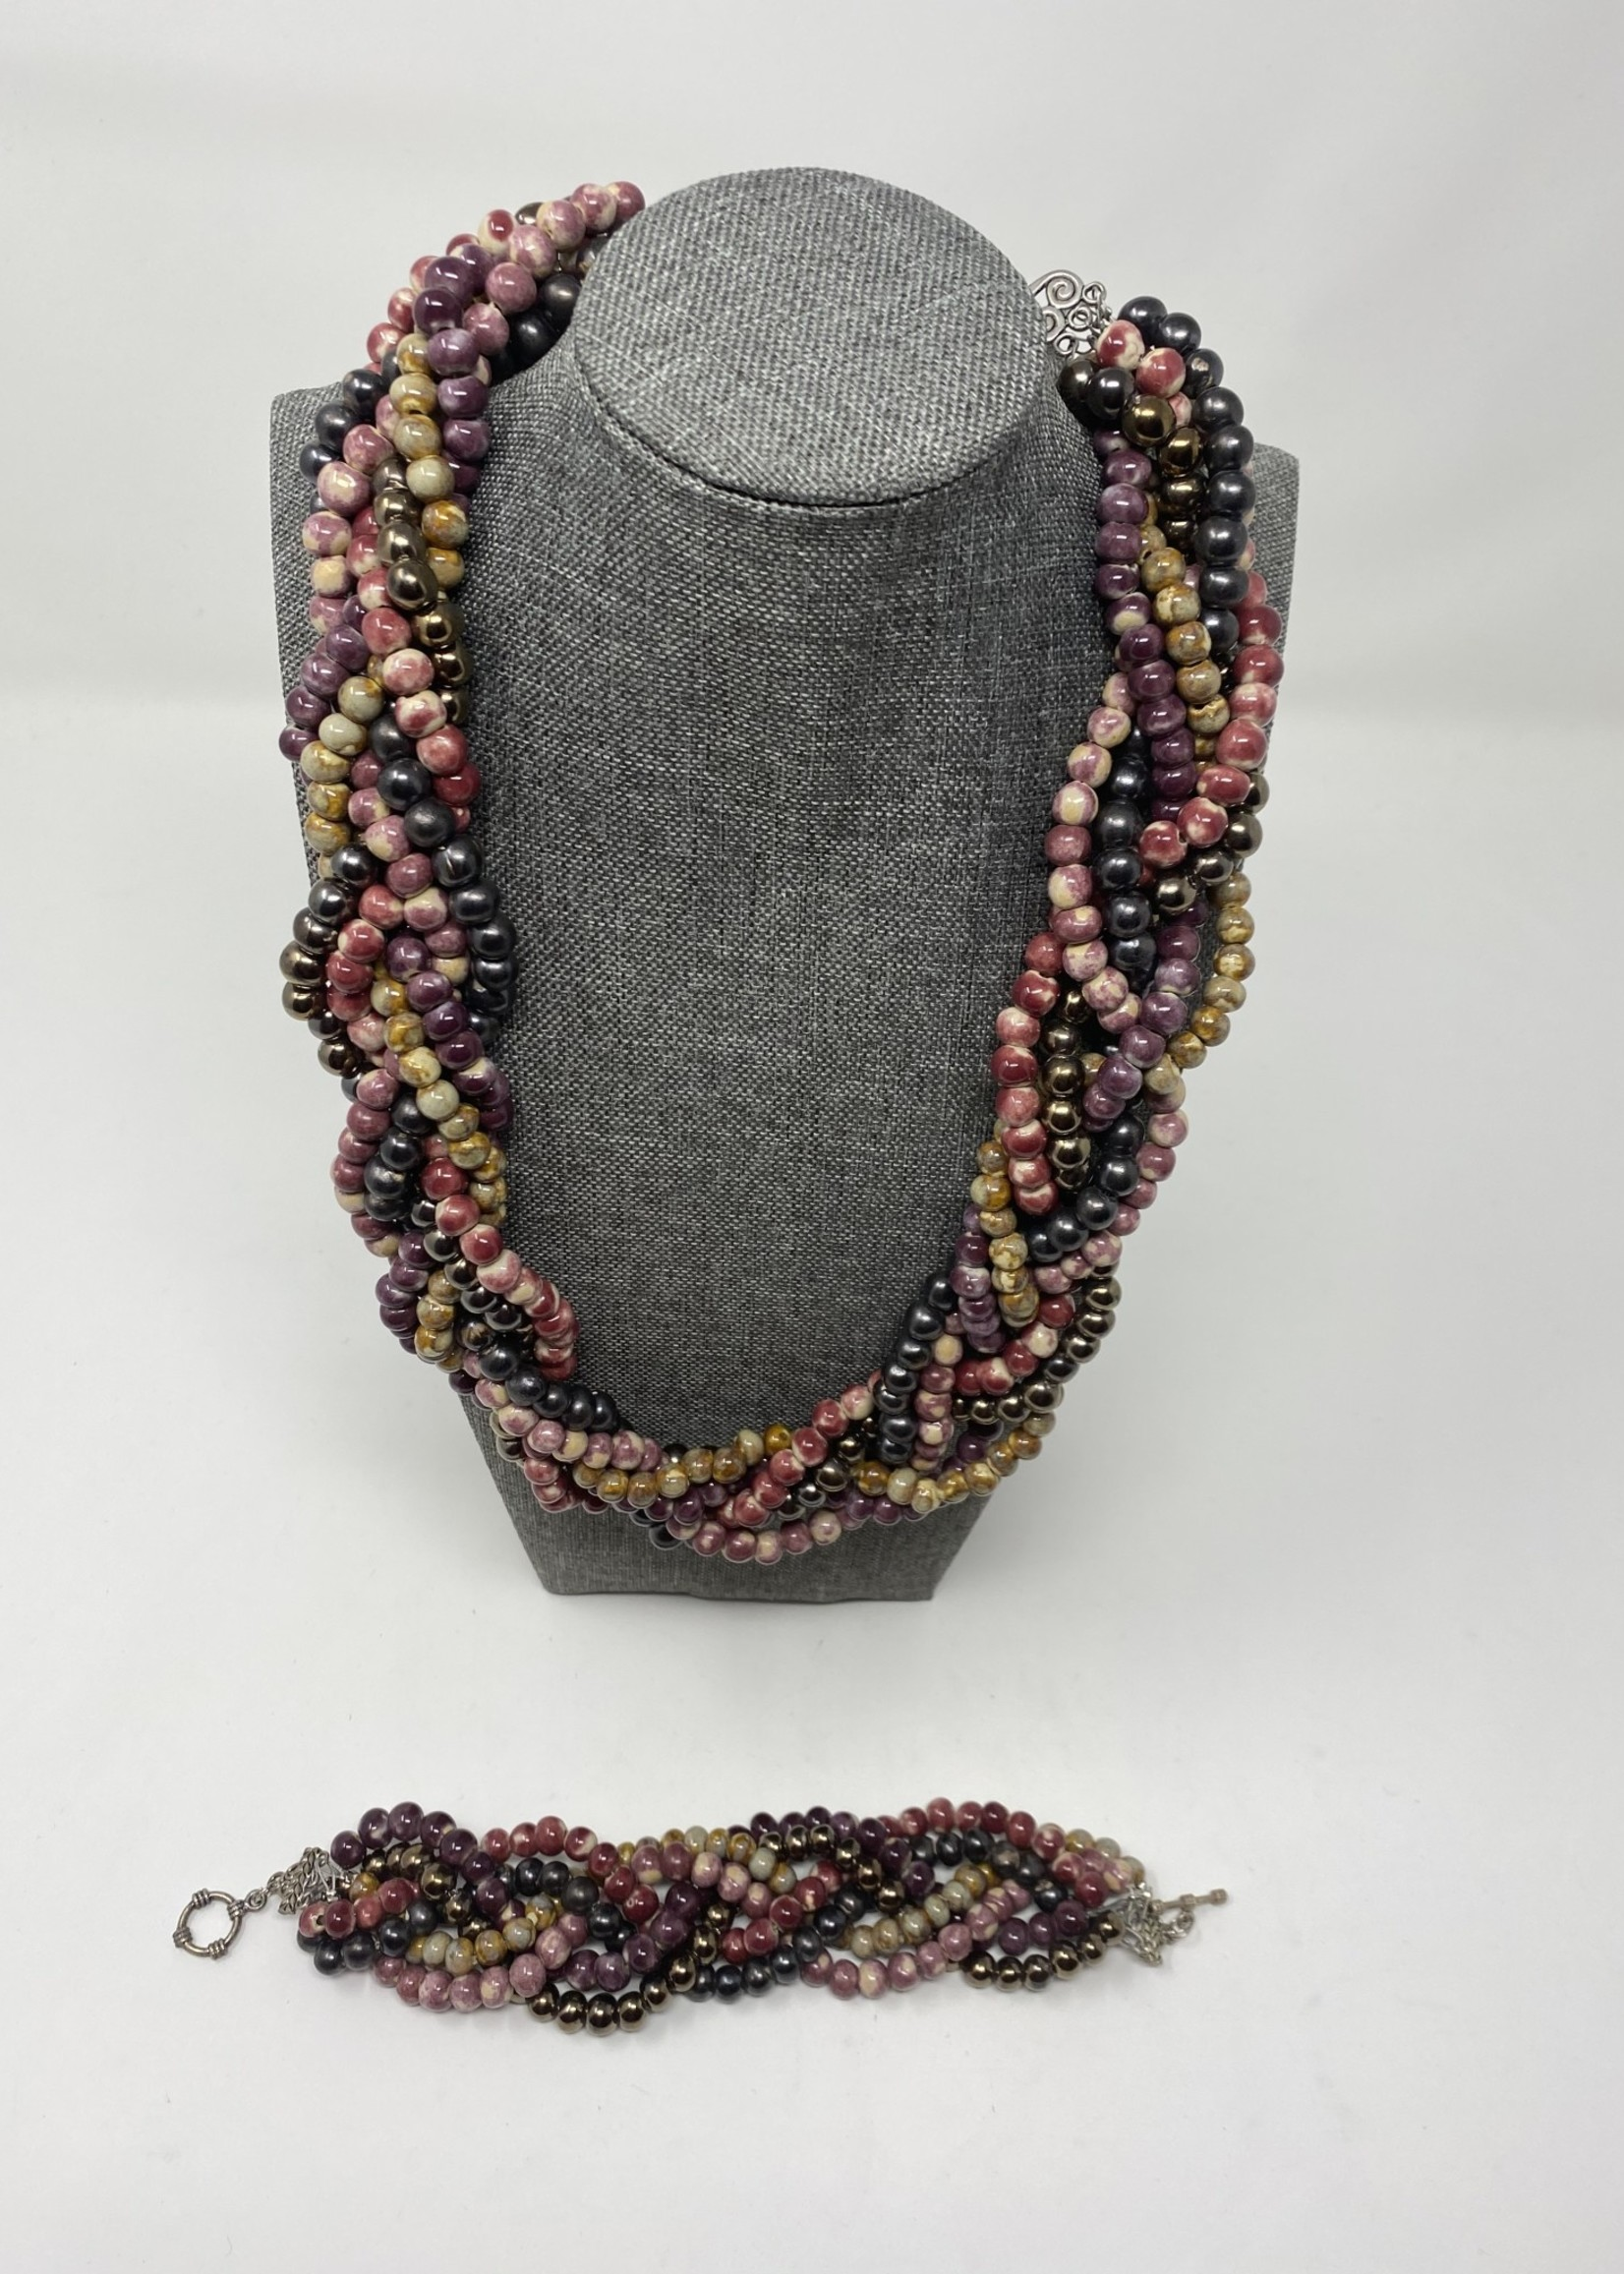 HANDMADE SWAZI BRAIDED NECKLACE